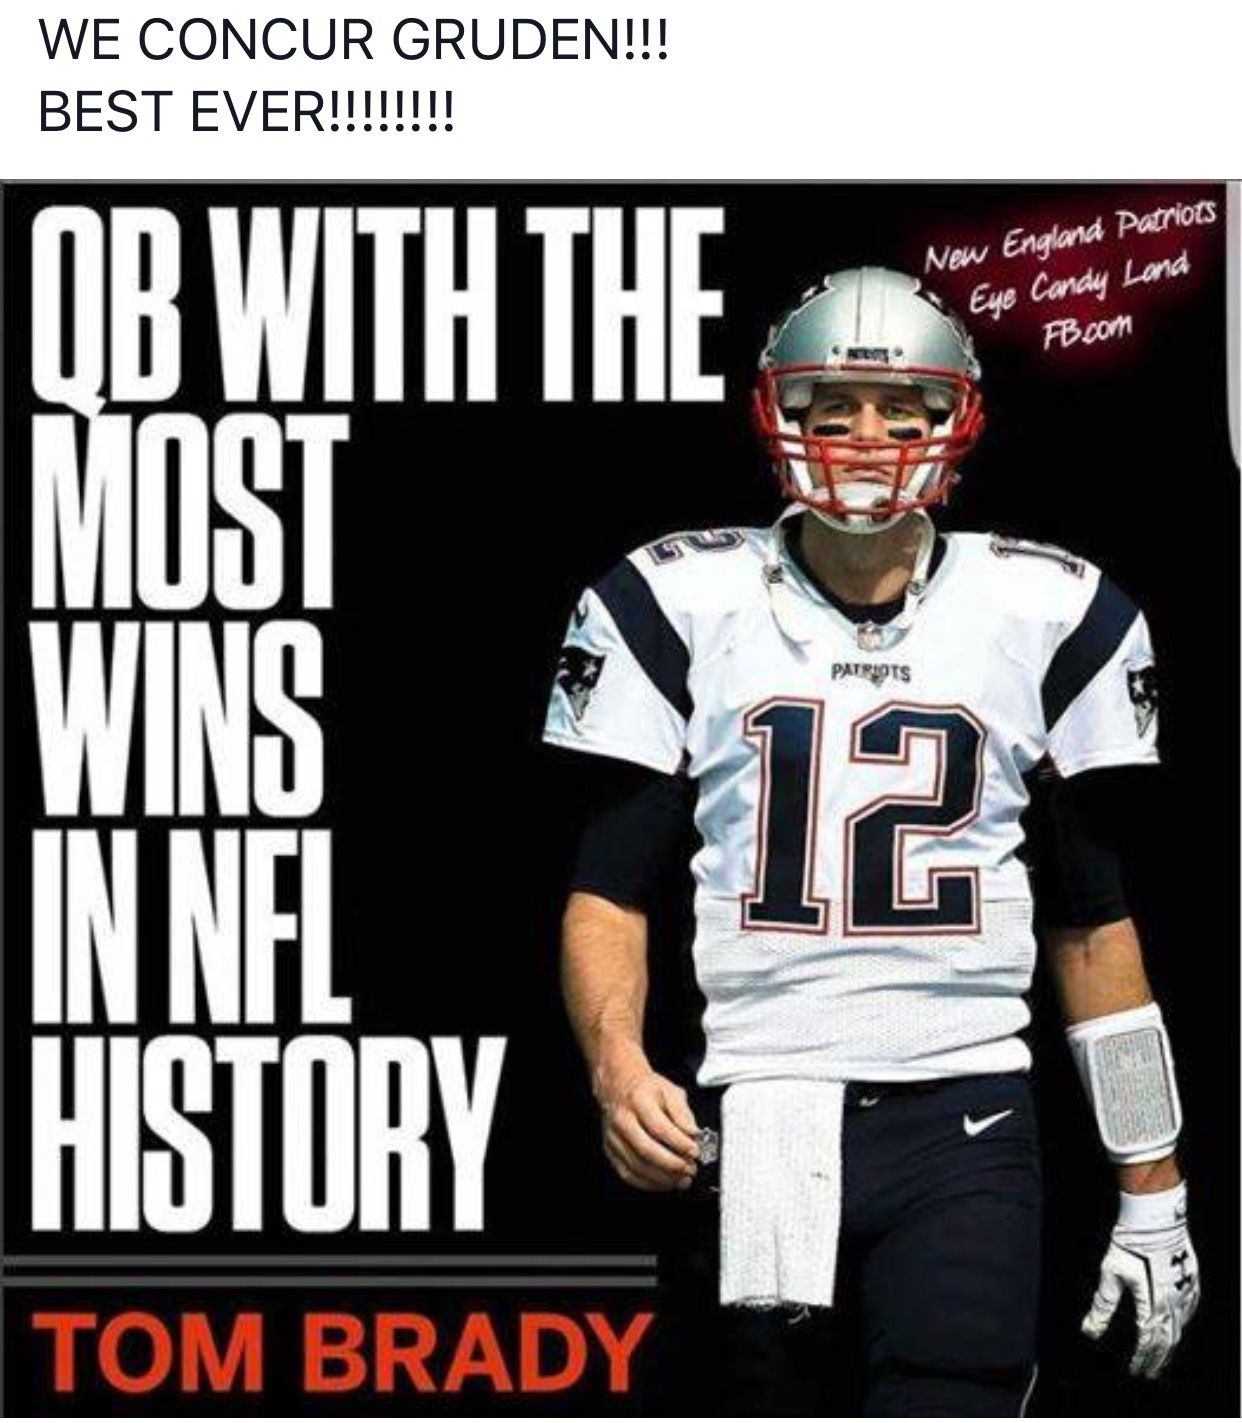 Best Ever Quarterback Http Www 99wtf Net Young Style Urban Style College New England Patriots Football New England Patriots Merchandise Patriots Football